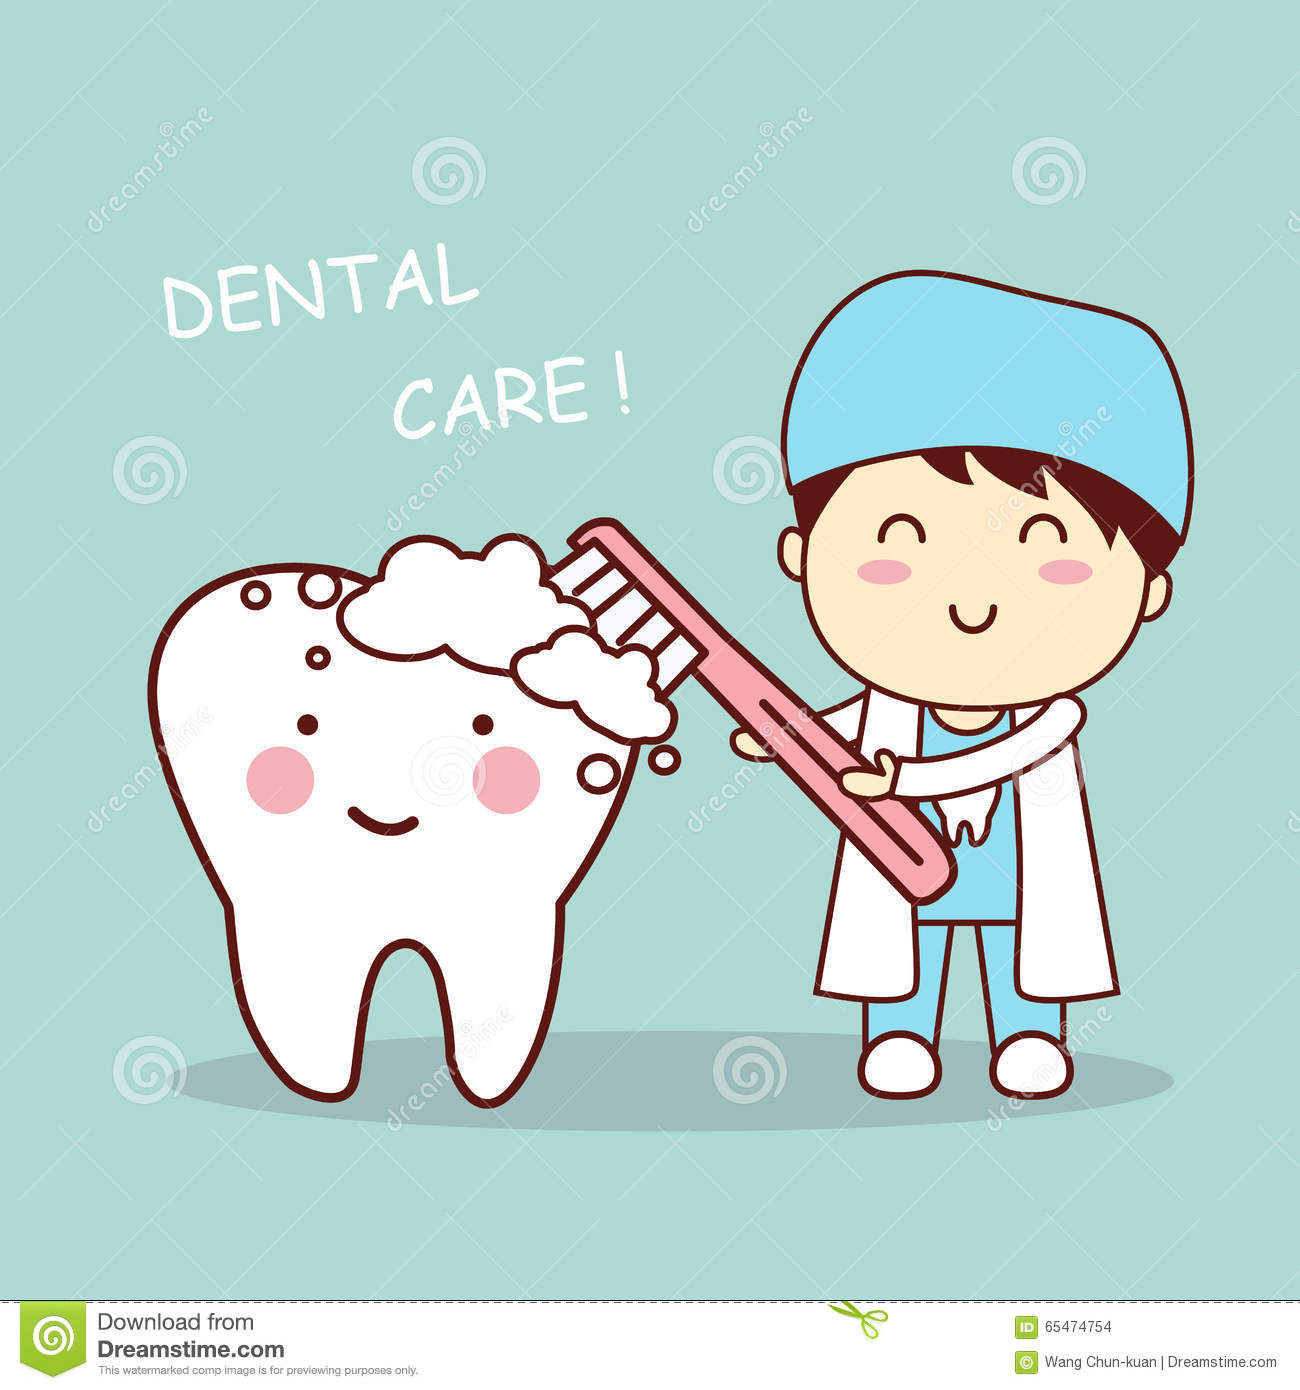 cute-cartoon-dentist-brush-tooth-doctor-great-health-dental-care-concept-65474754.jpg